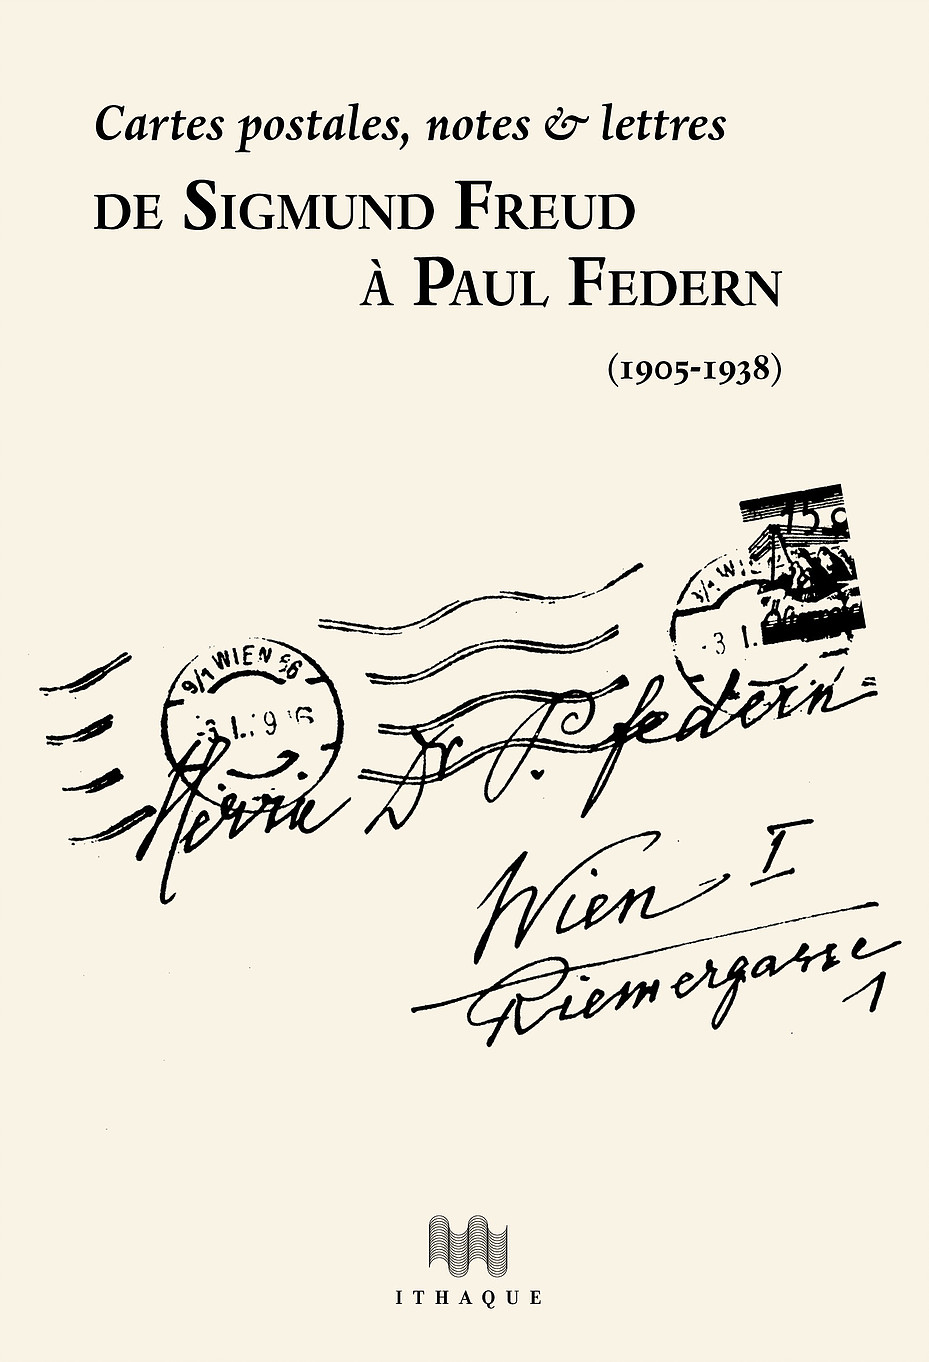 Cartes postales, notes & lettresde Sigmund Freud à Paul Federn (1905-1938)